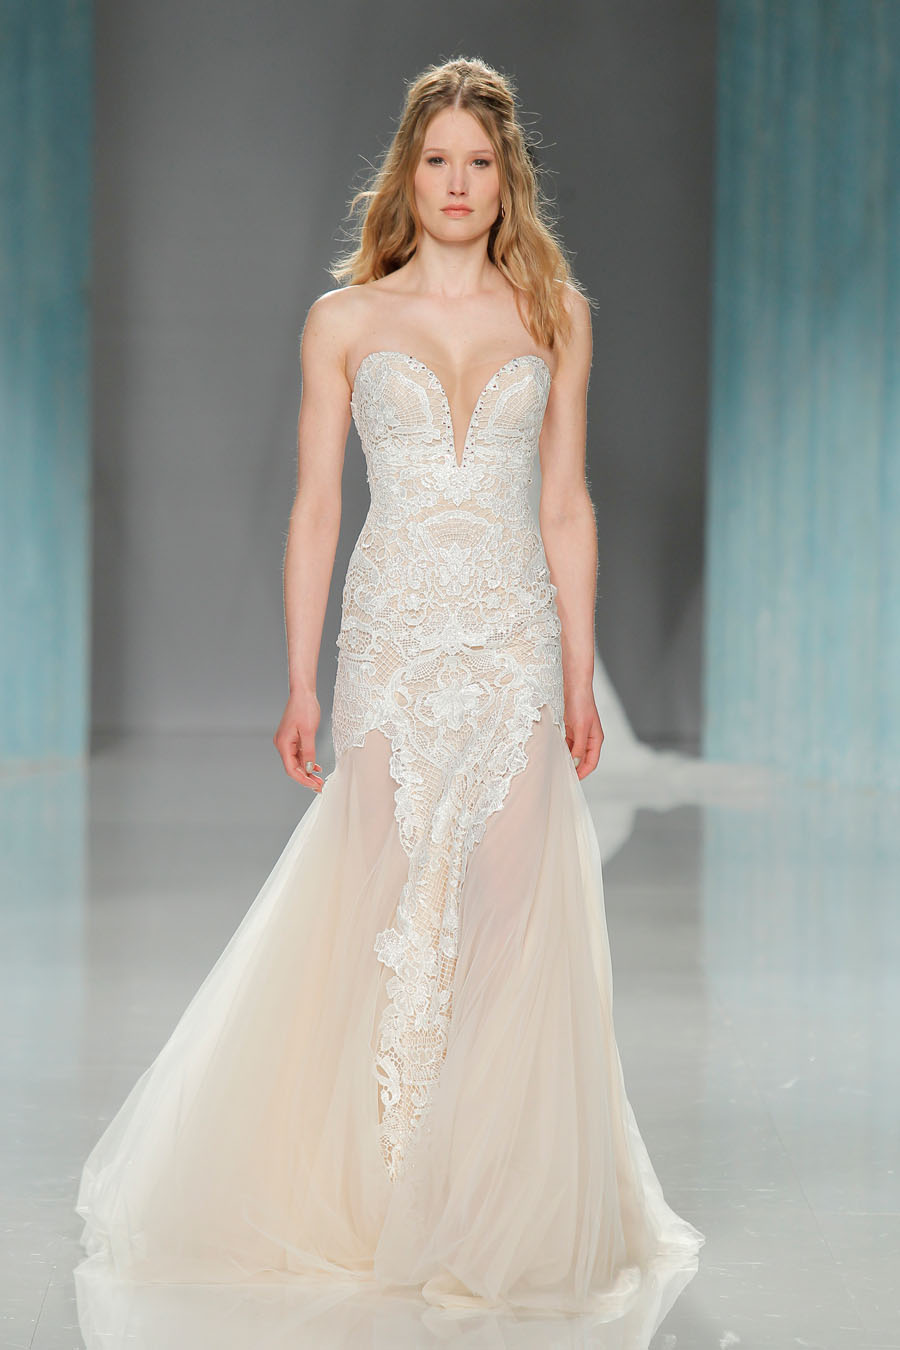 GALA Bridal Gown Collection - 912